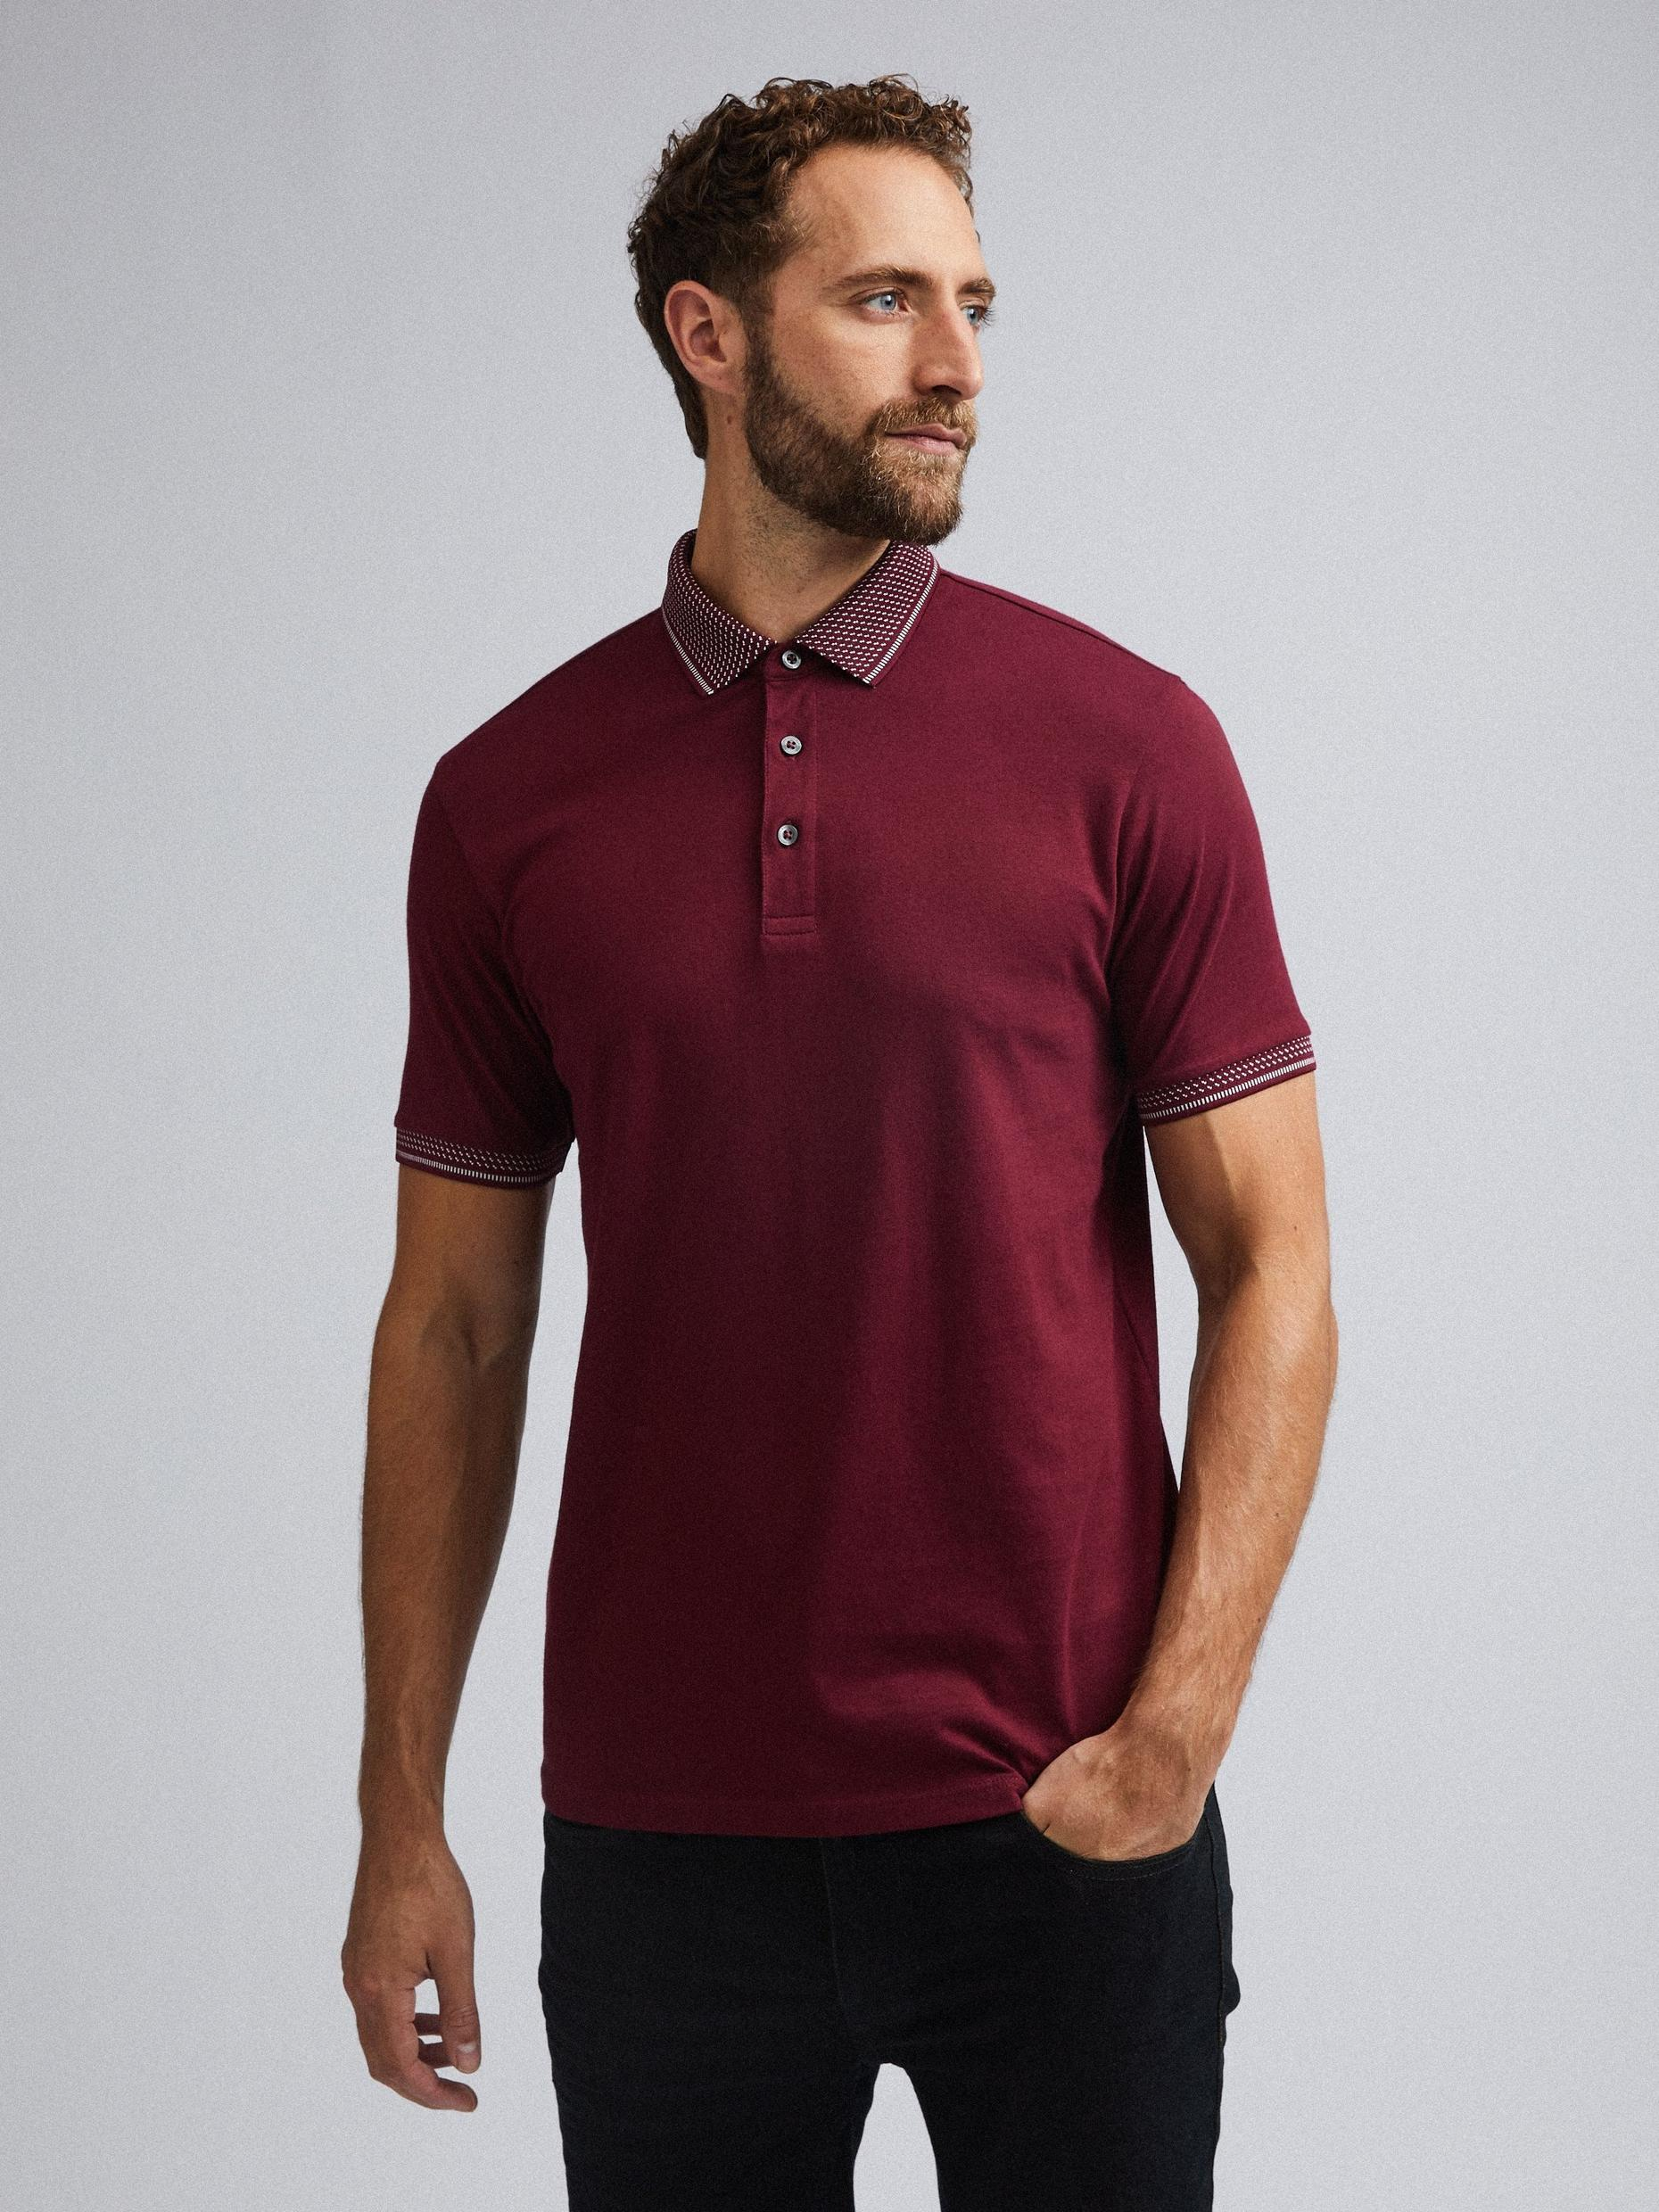 Burgundy Jacquard Collar Polo Shirt